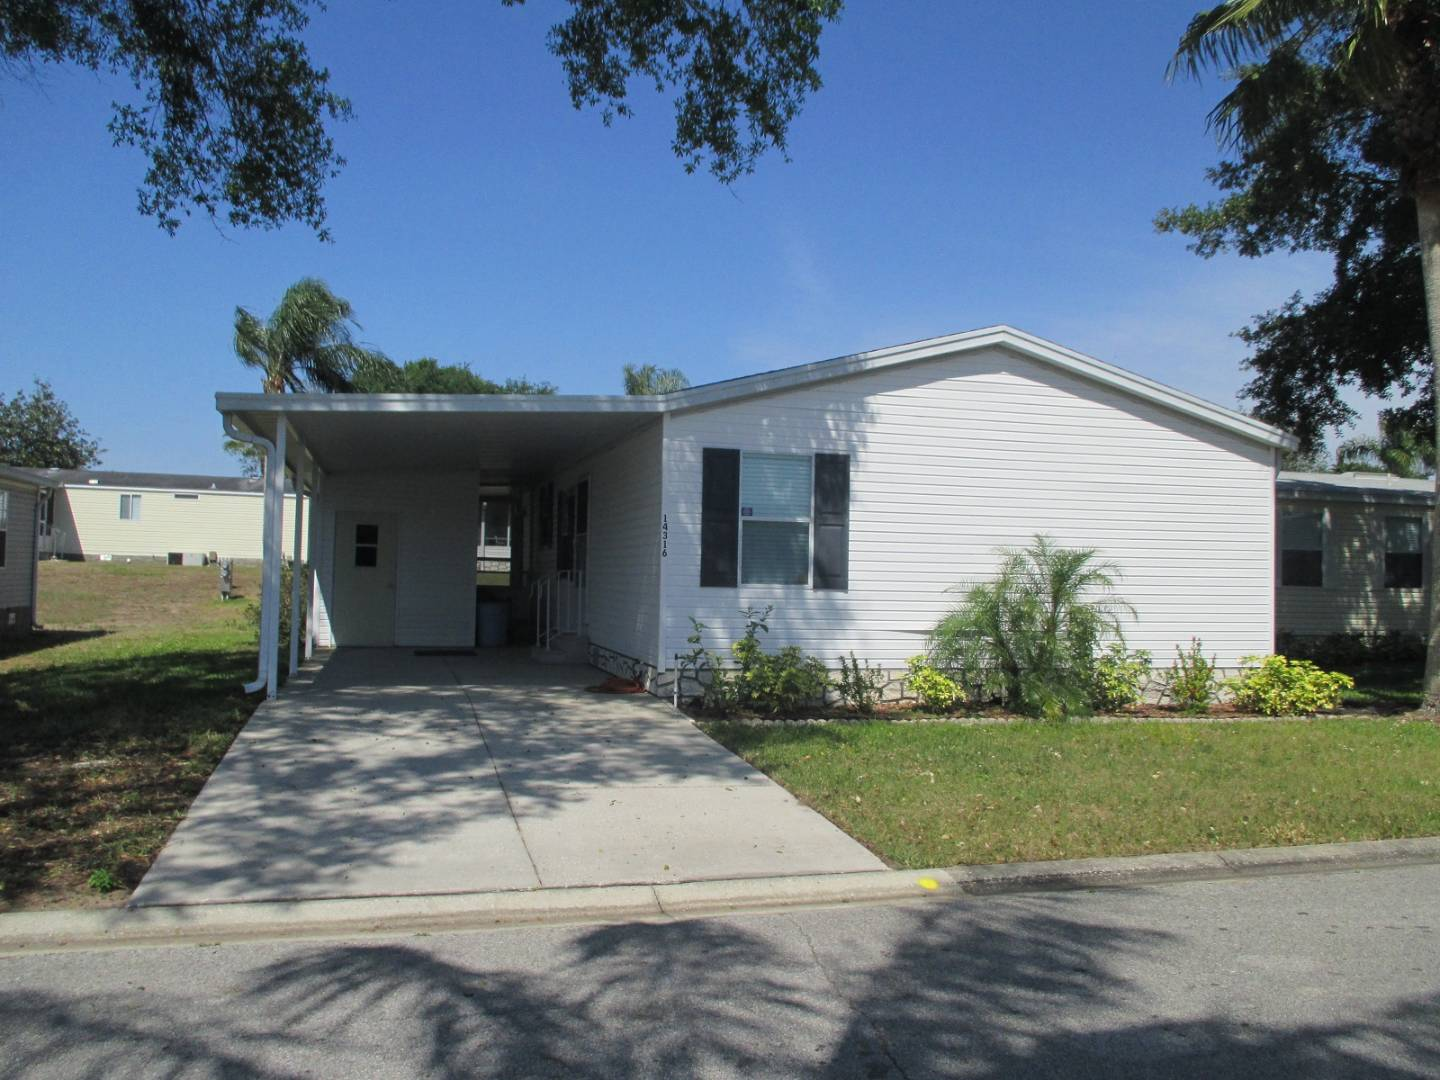 14316 Nieves Circle, #4317, WINTER GARDEN, Florida 34787, 3 Bedrooms Bedrooms, ,2 BathroomsBathrooms,Residential,For Sale,14316 Nieves Circle, #4317,10985084